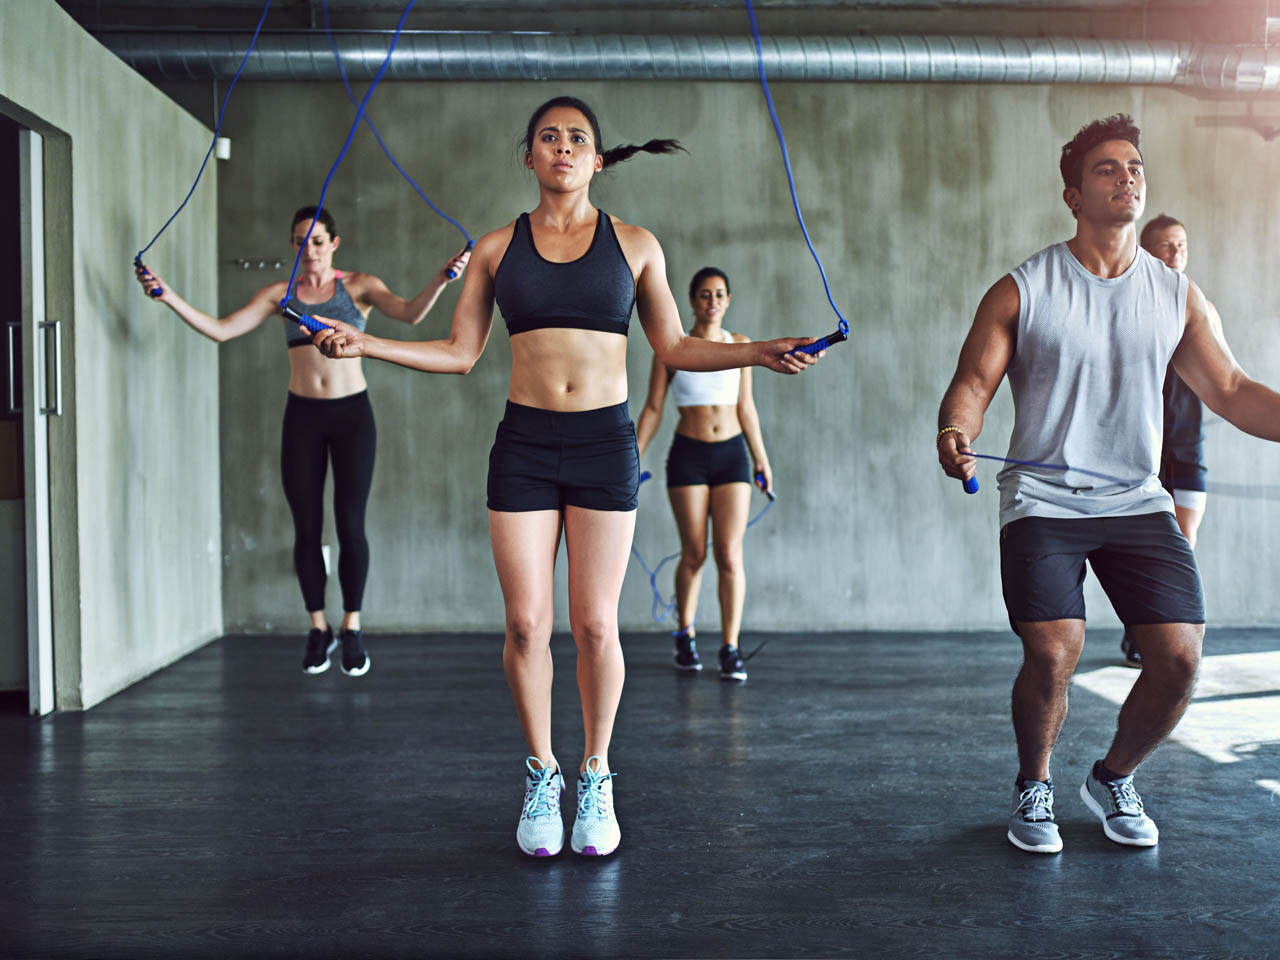 If You Eat More, Exercise More Too